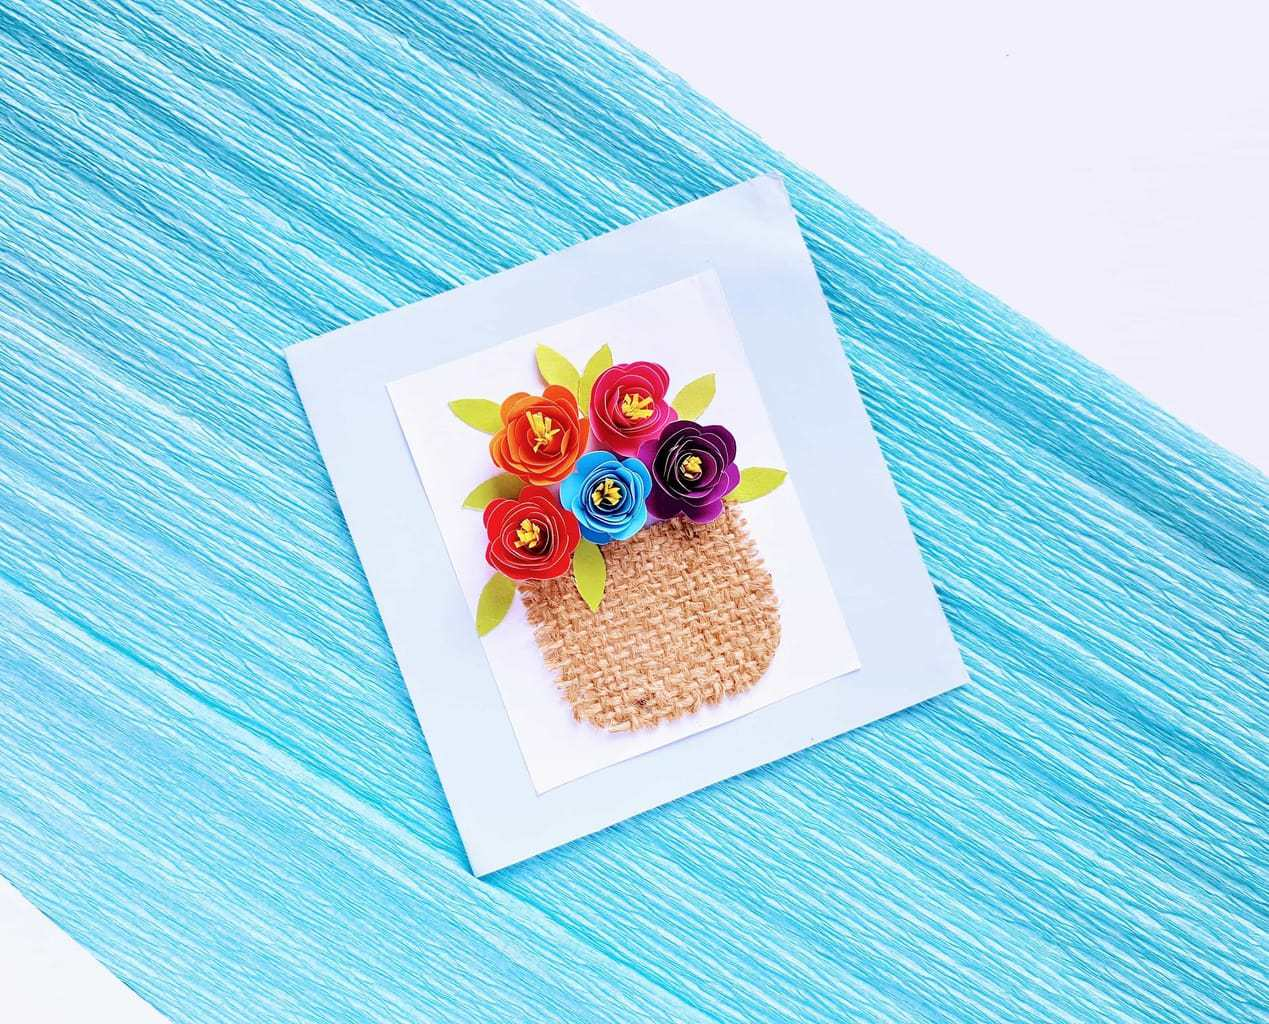 Mothers Day Gift Ideas, diy Mother's Day card, diy rolled flowers, rolled flowers on card, 3d card with flowers, Mother's Day greeting card, homemade greeting card for Mother's Day